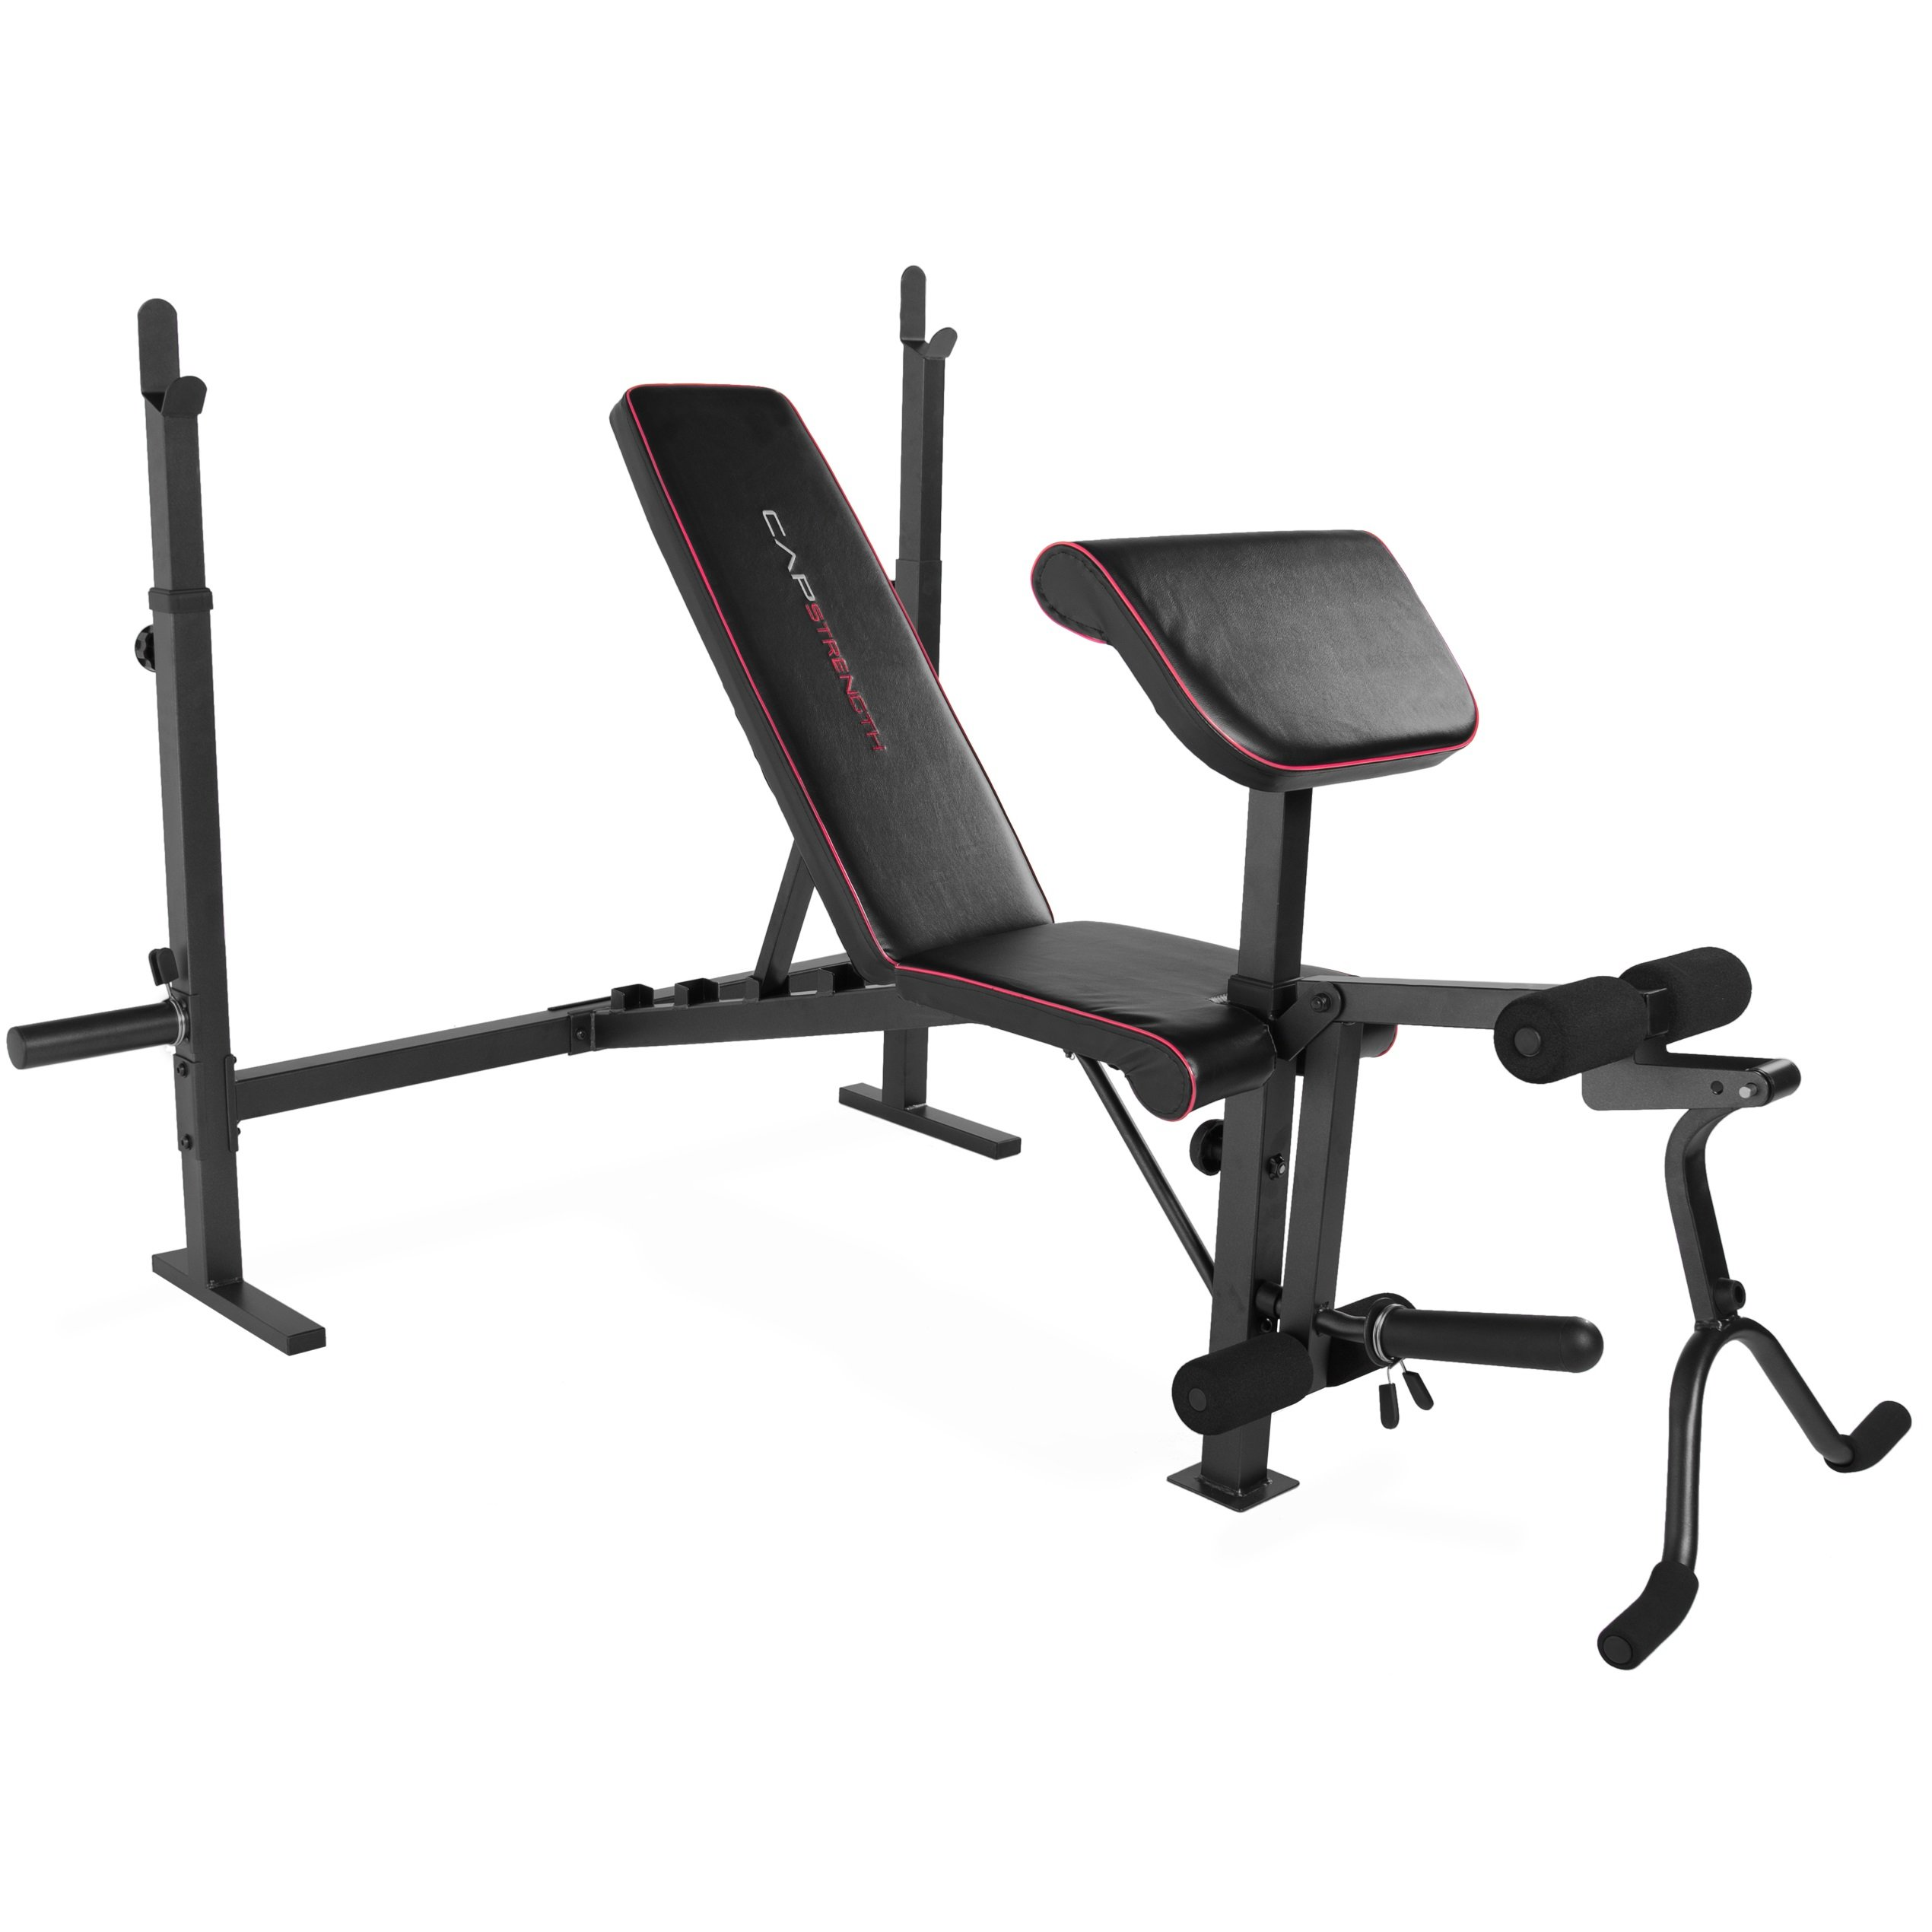 CAP Strength Olympic Weight Bench with Preacher Pad & Leg Attachment by CAP Barbell